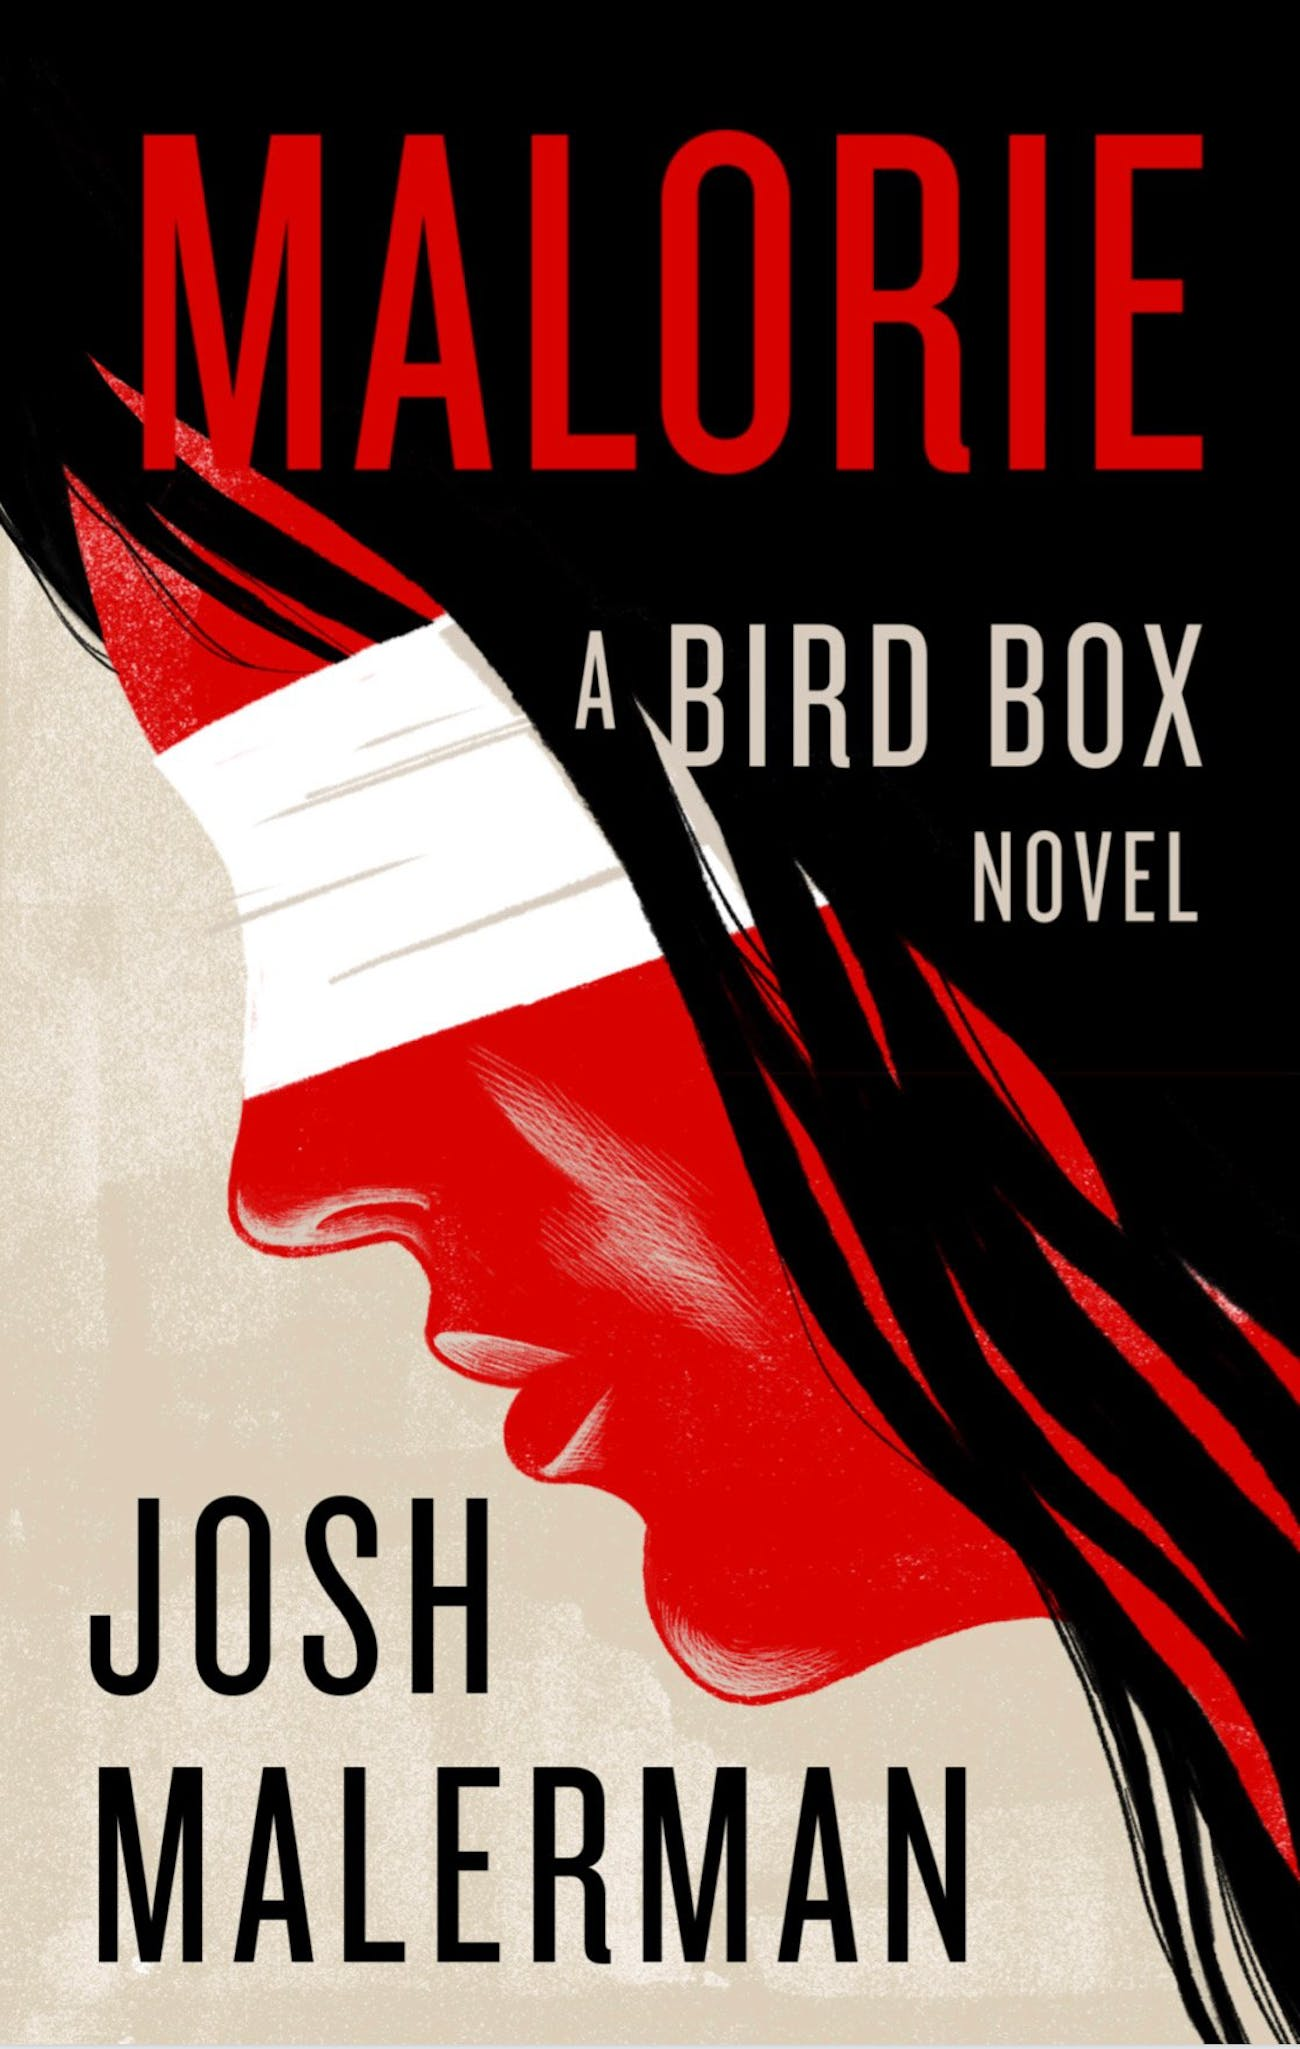 The book cover illustration for 'Malorie', shared by Malerman.